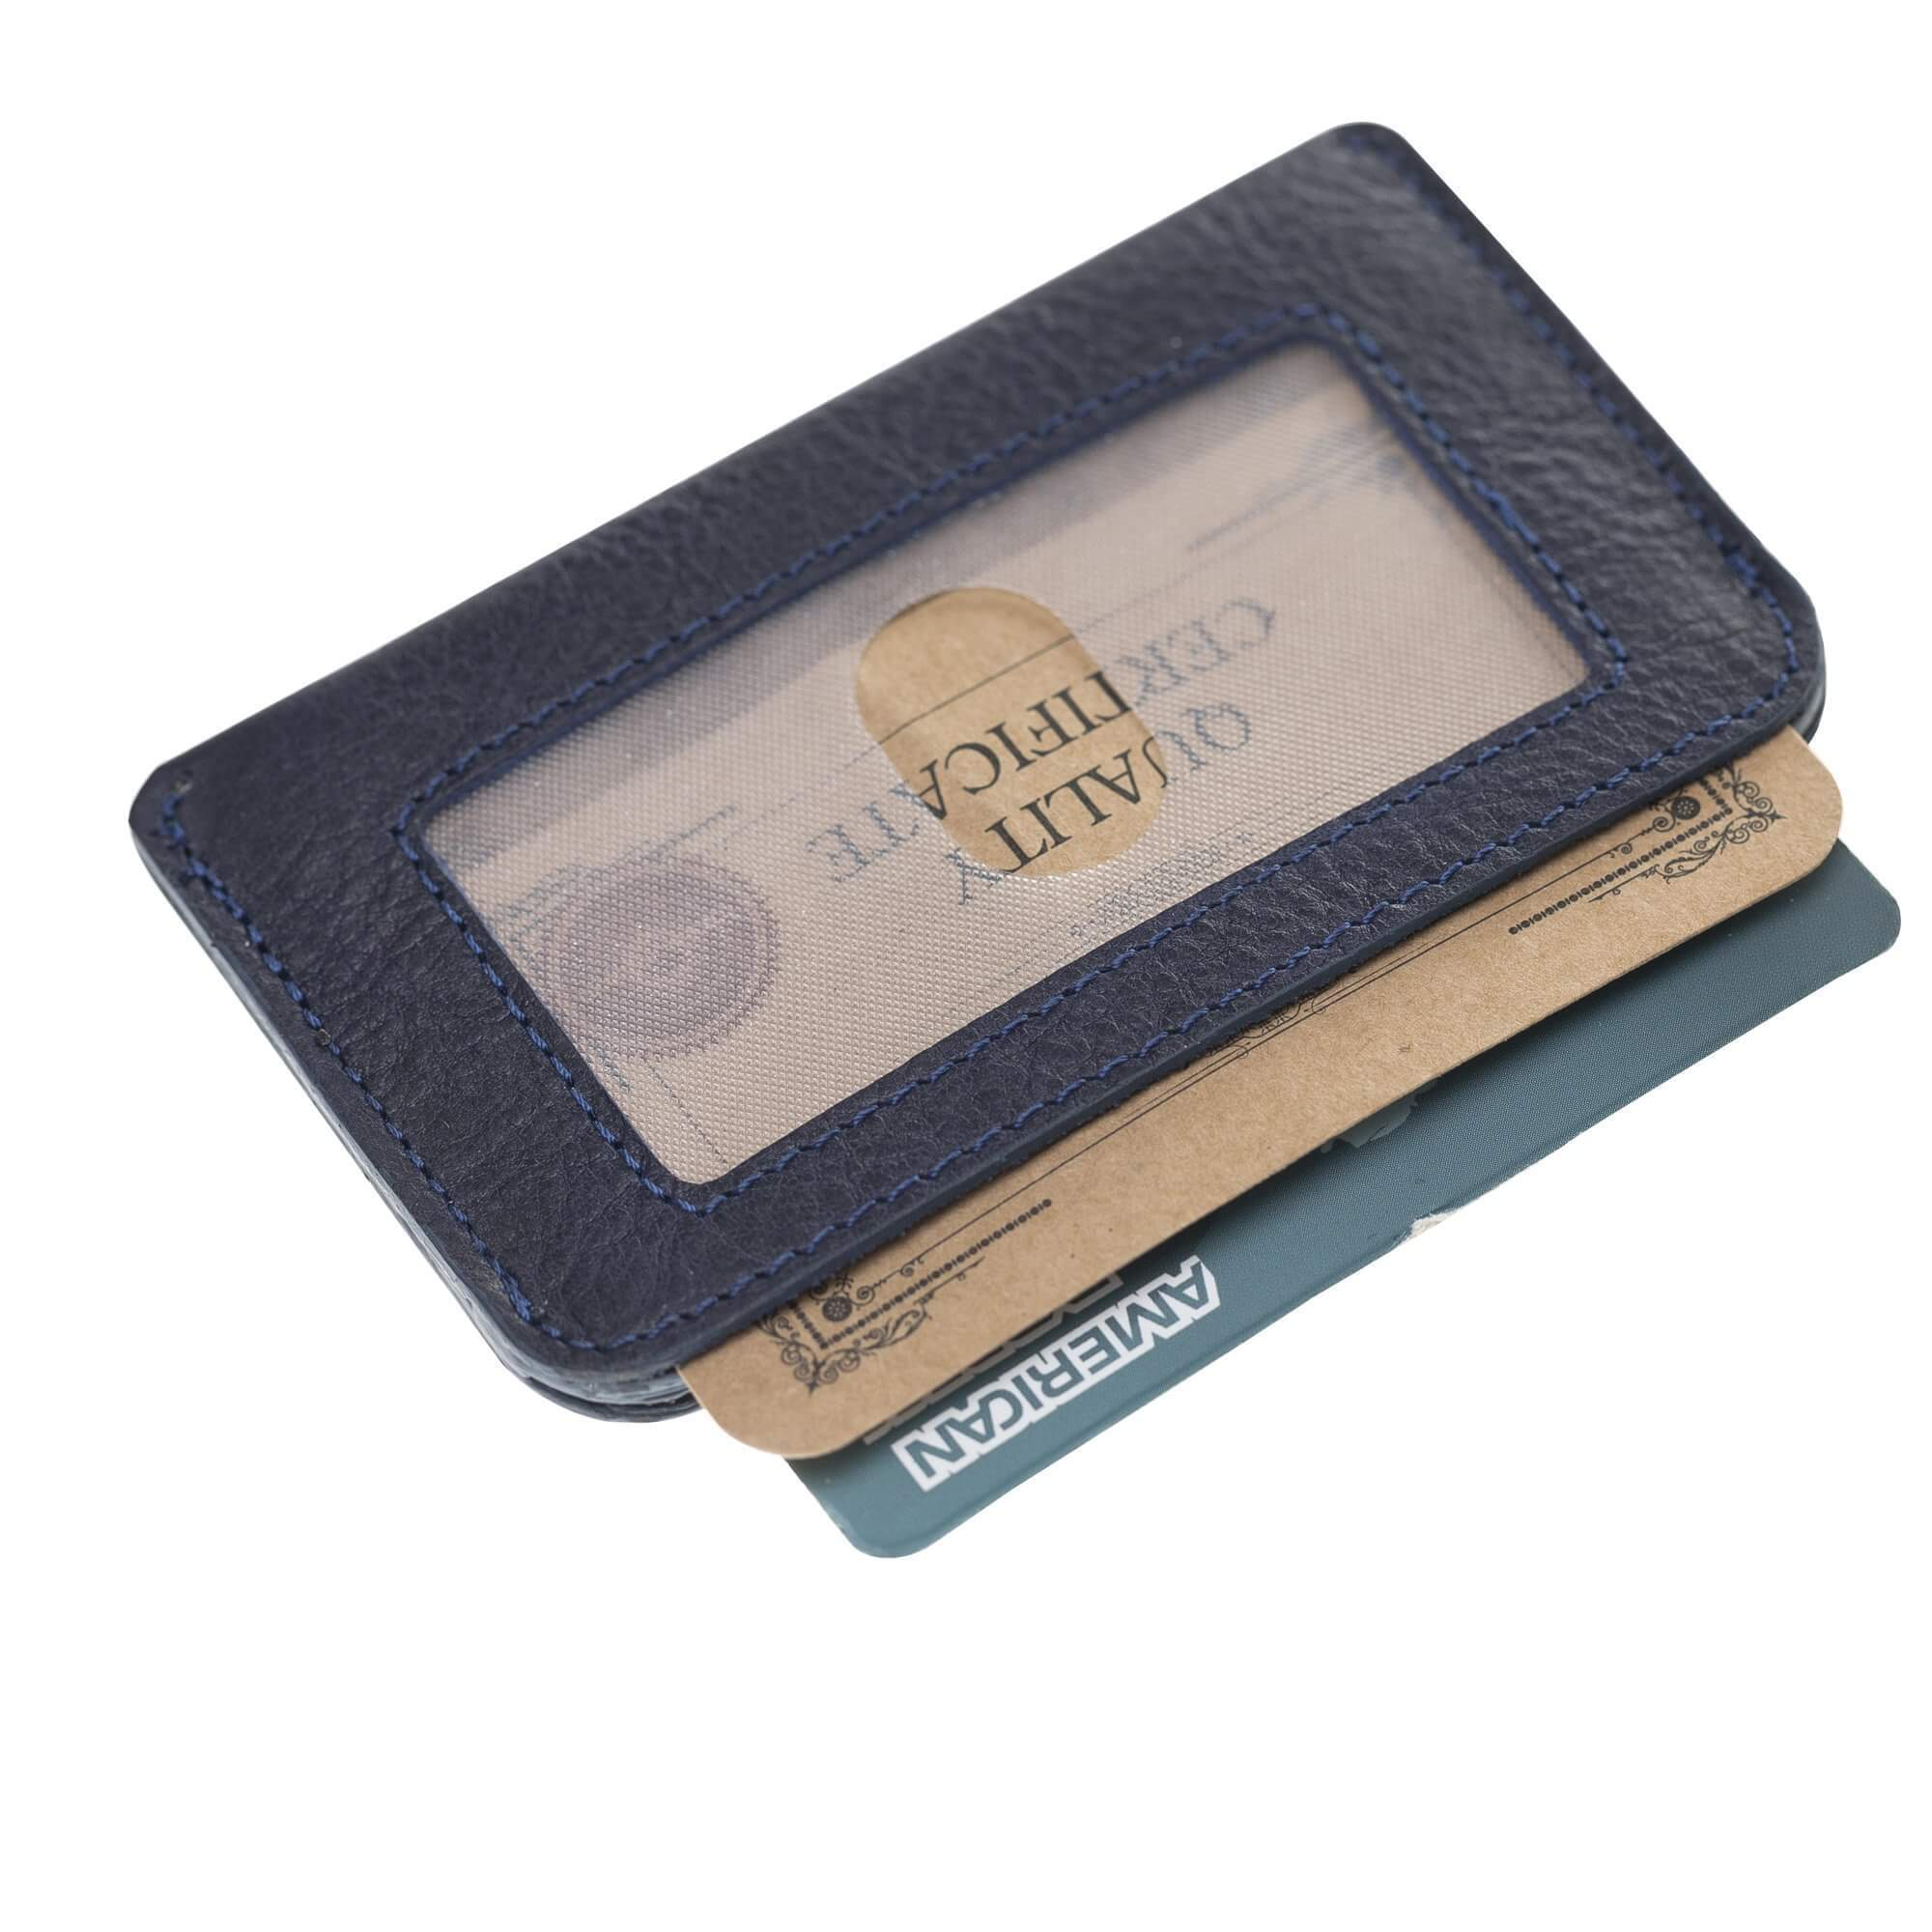 Wallet Minima Leather Card Holder With RFID Blocker-Vegetal Navy Blue Bouletta Case